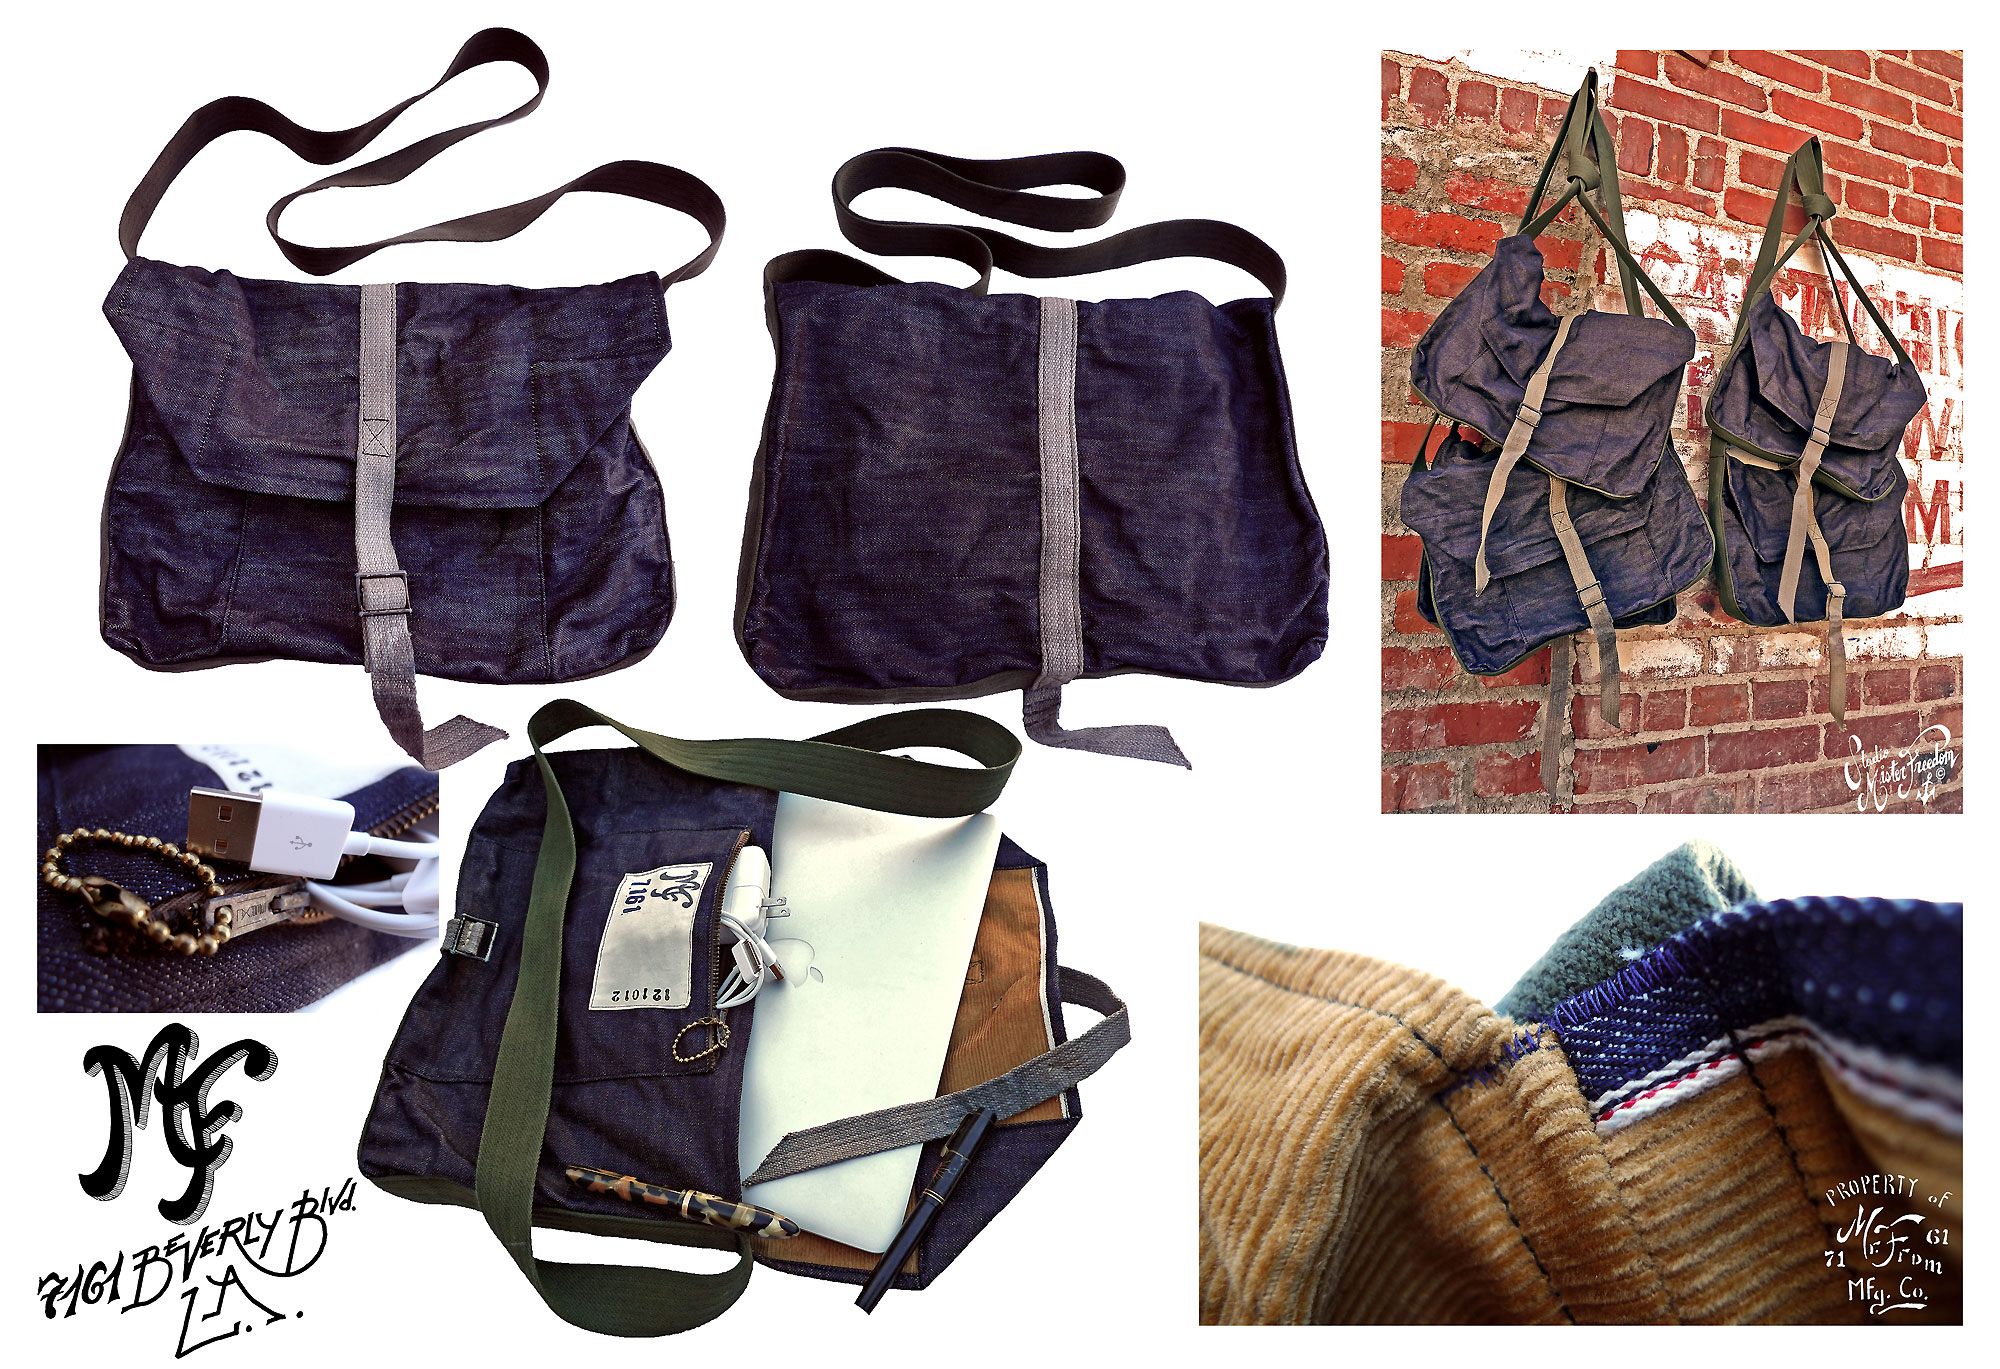 Denim Laptop Haversack ©2012 Mister Freedom®